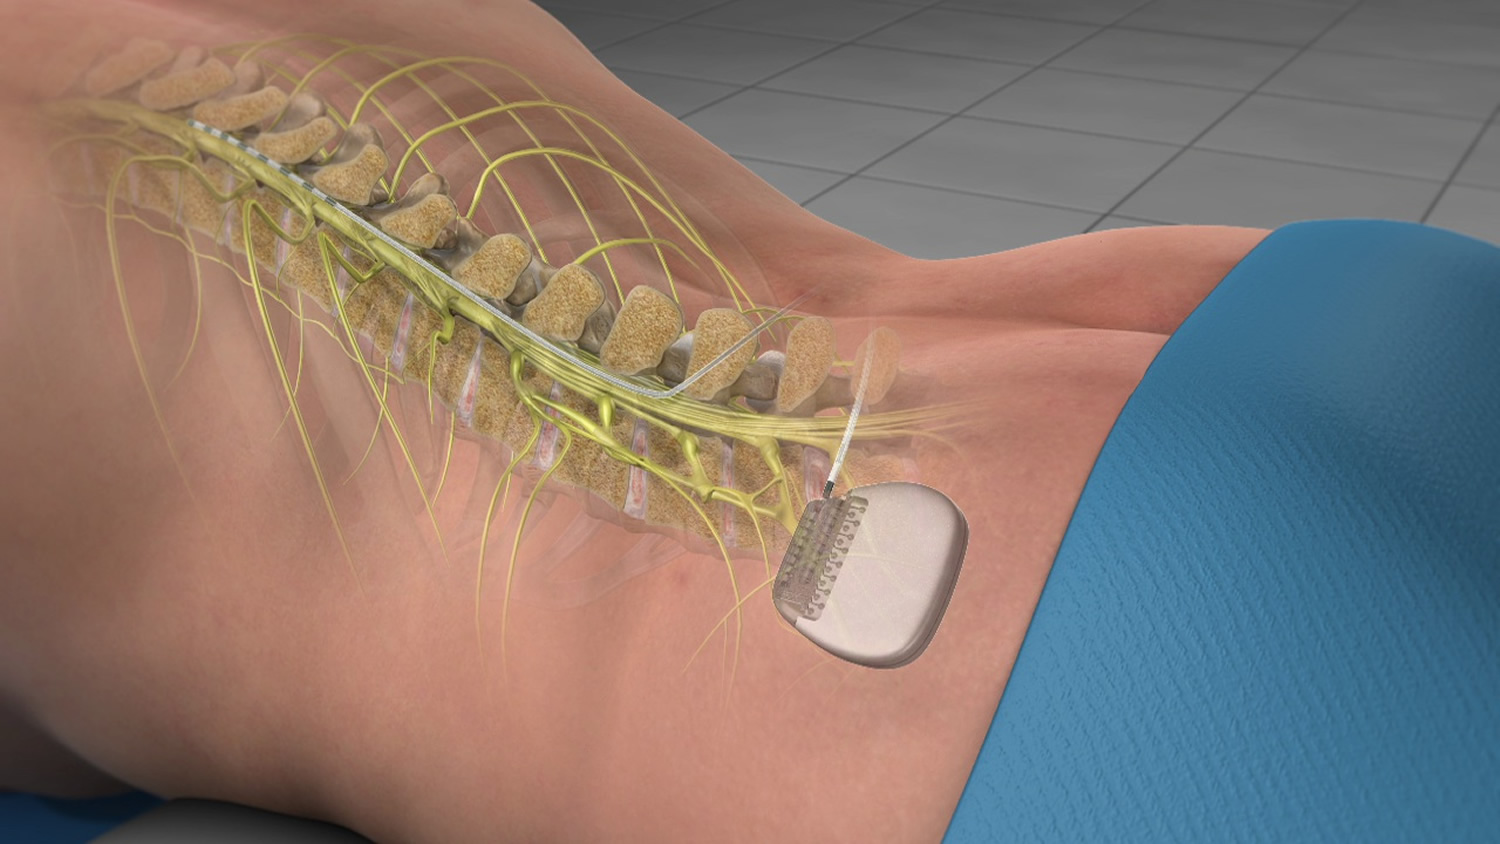 Spinal Cord Stimulator Implant Trial And Surgery Uses